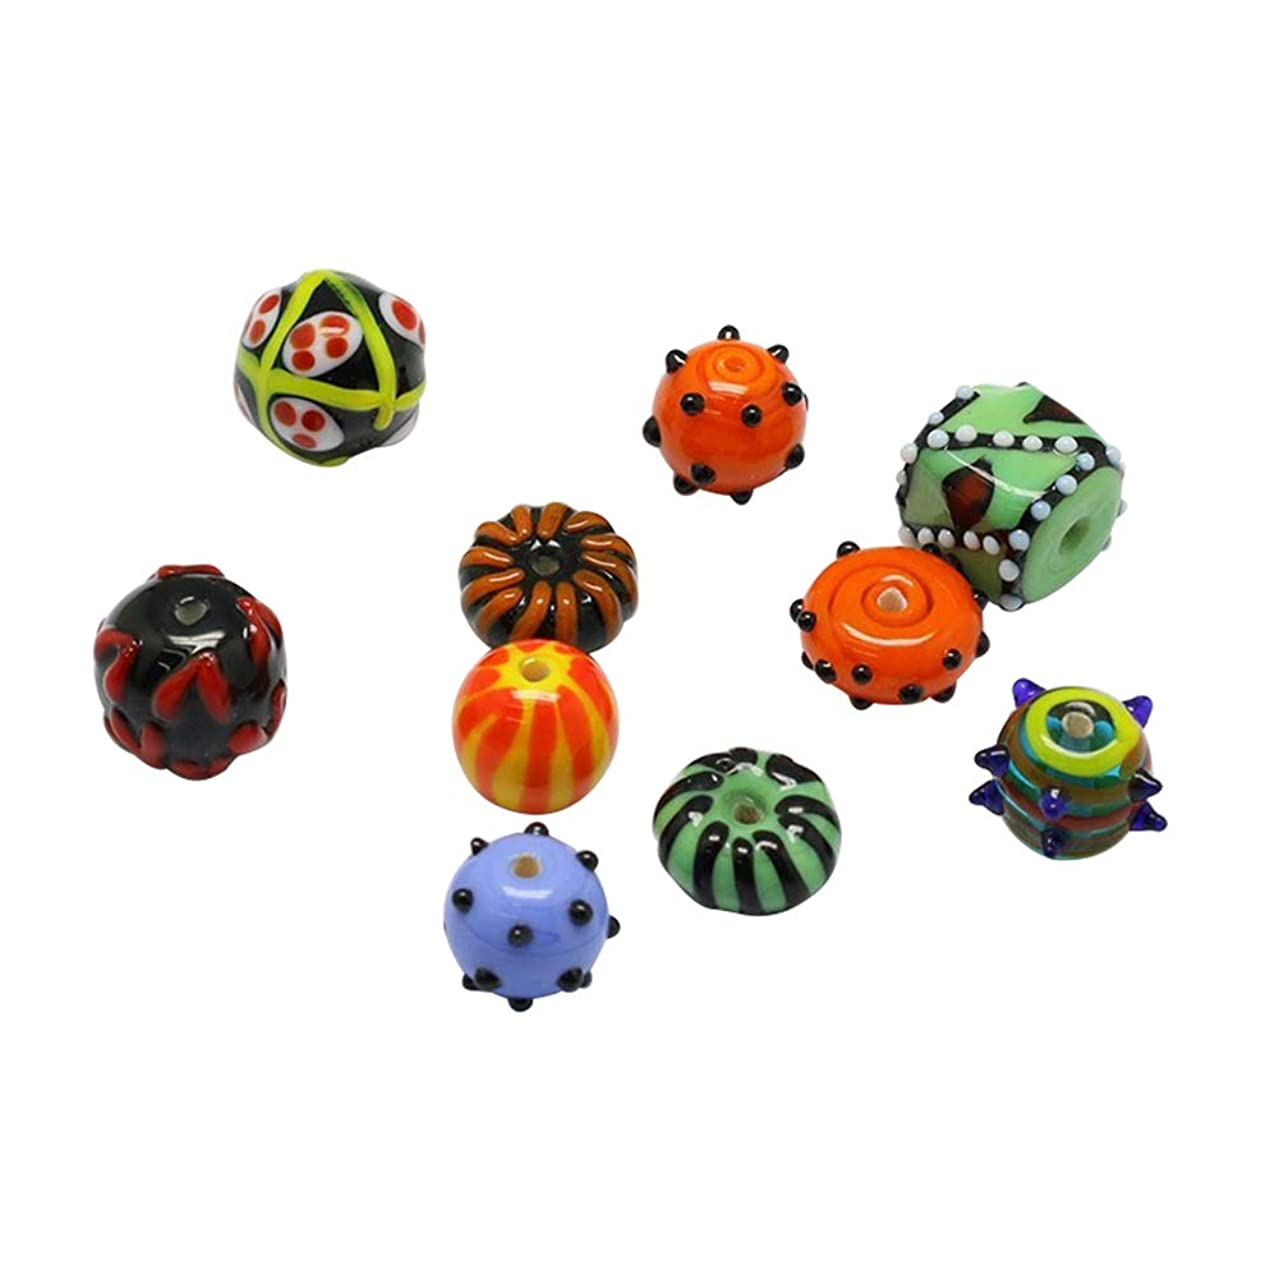 PH PandaHall 10 Pcs Bumpy Lampwork Glass Beads Loose Spacer Bead for Jewelry Making, Assorted Styles